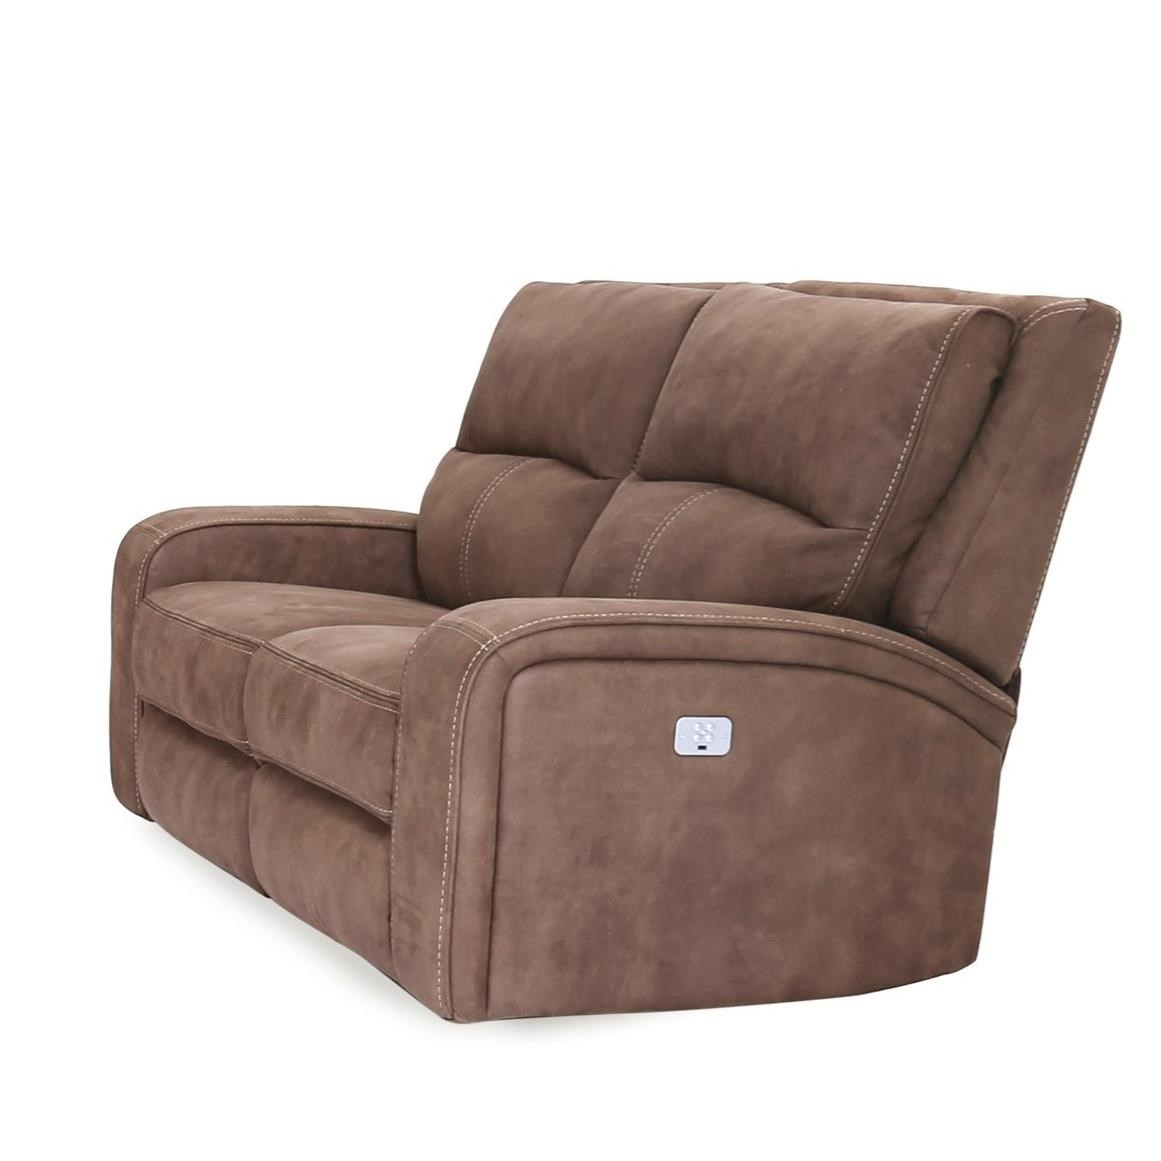 5168HM Reclining Loveseat by Cheers at Lagniappe Home Store